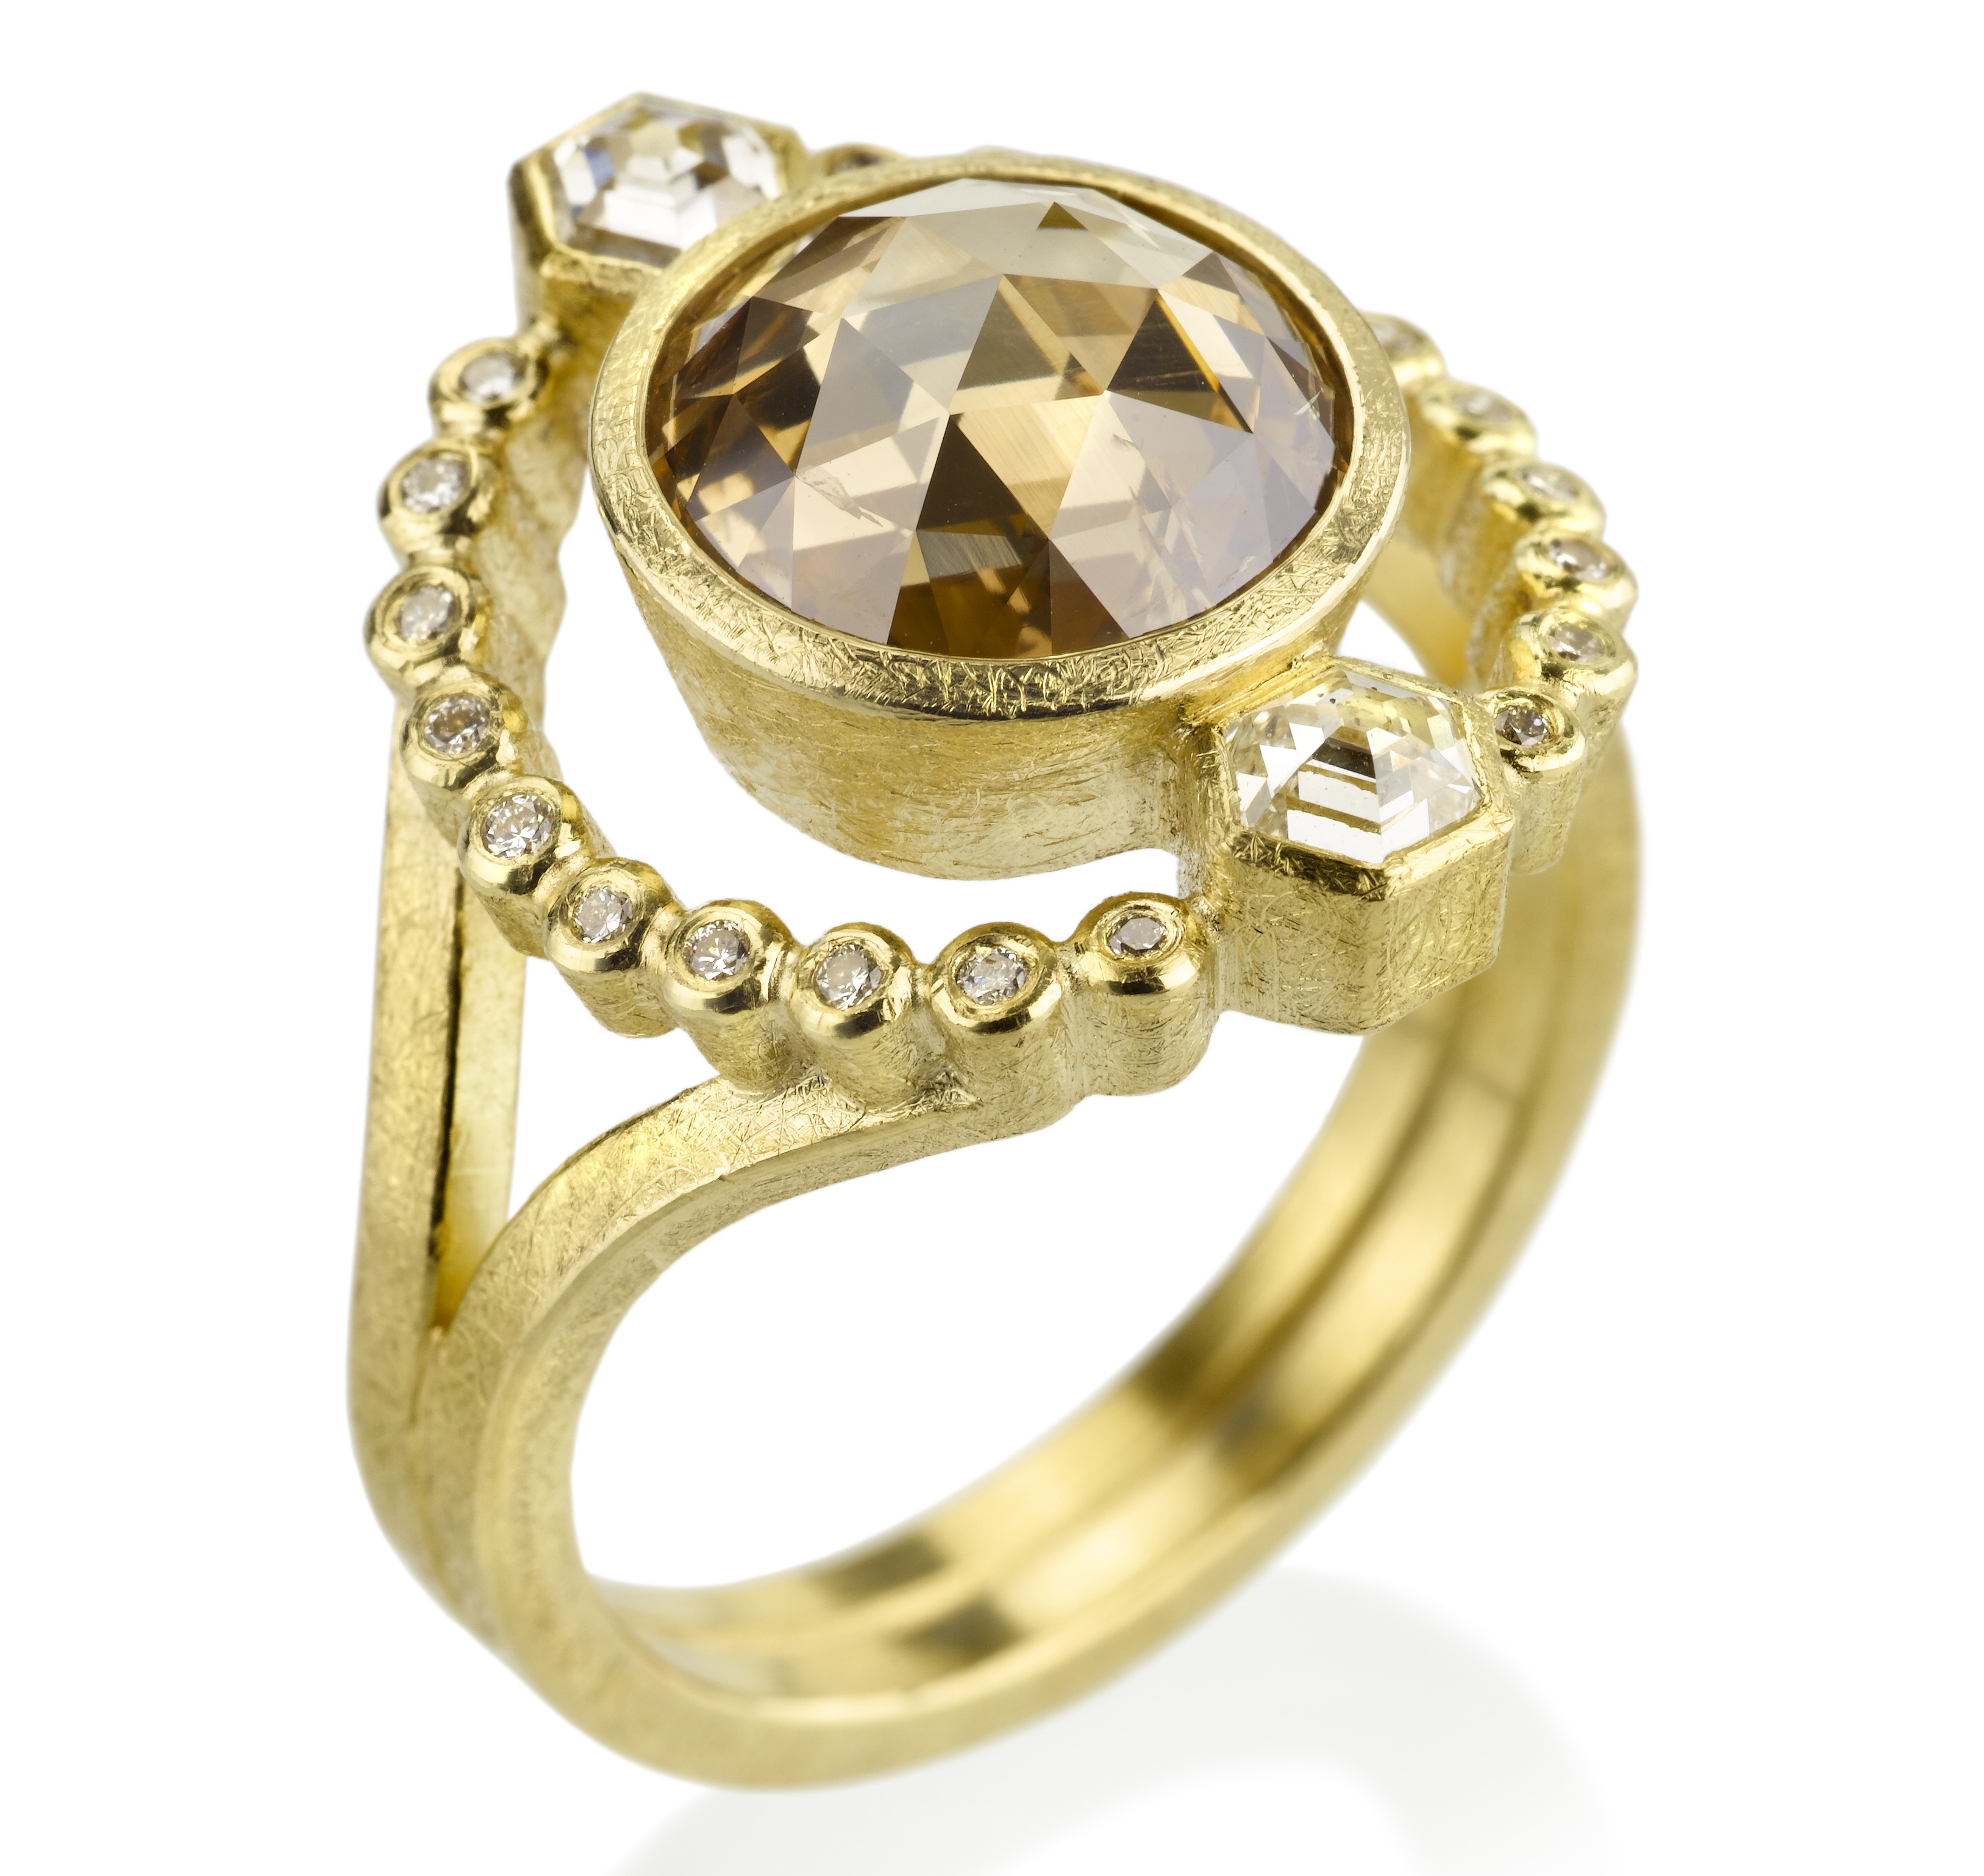 Todd Reed one-of-a-kind rose-cut diamond ring | JCK On Your Market